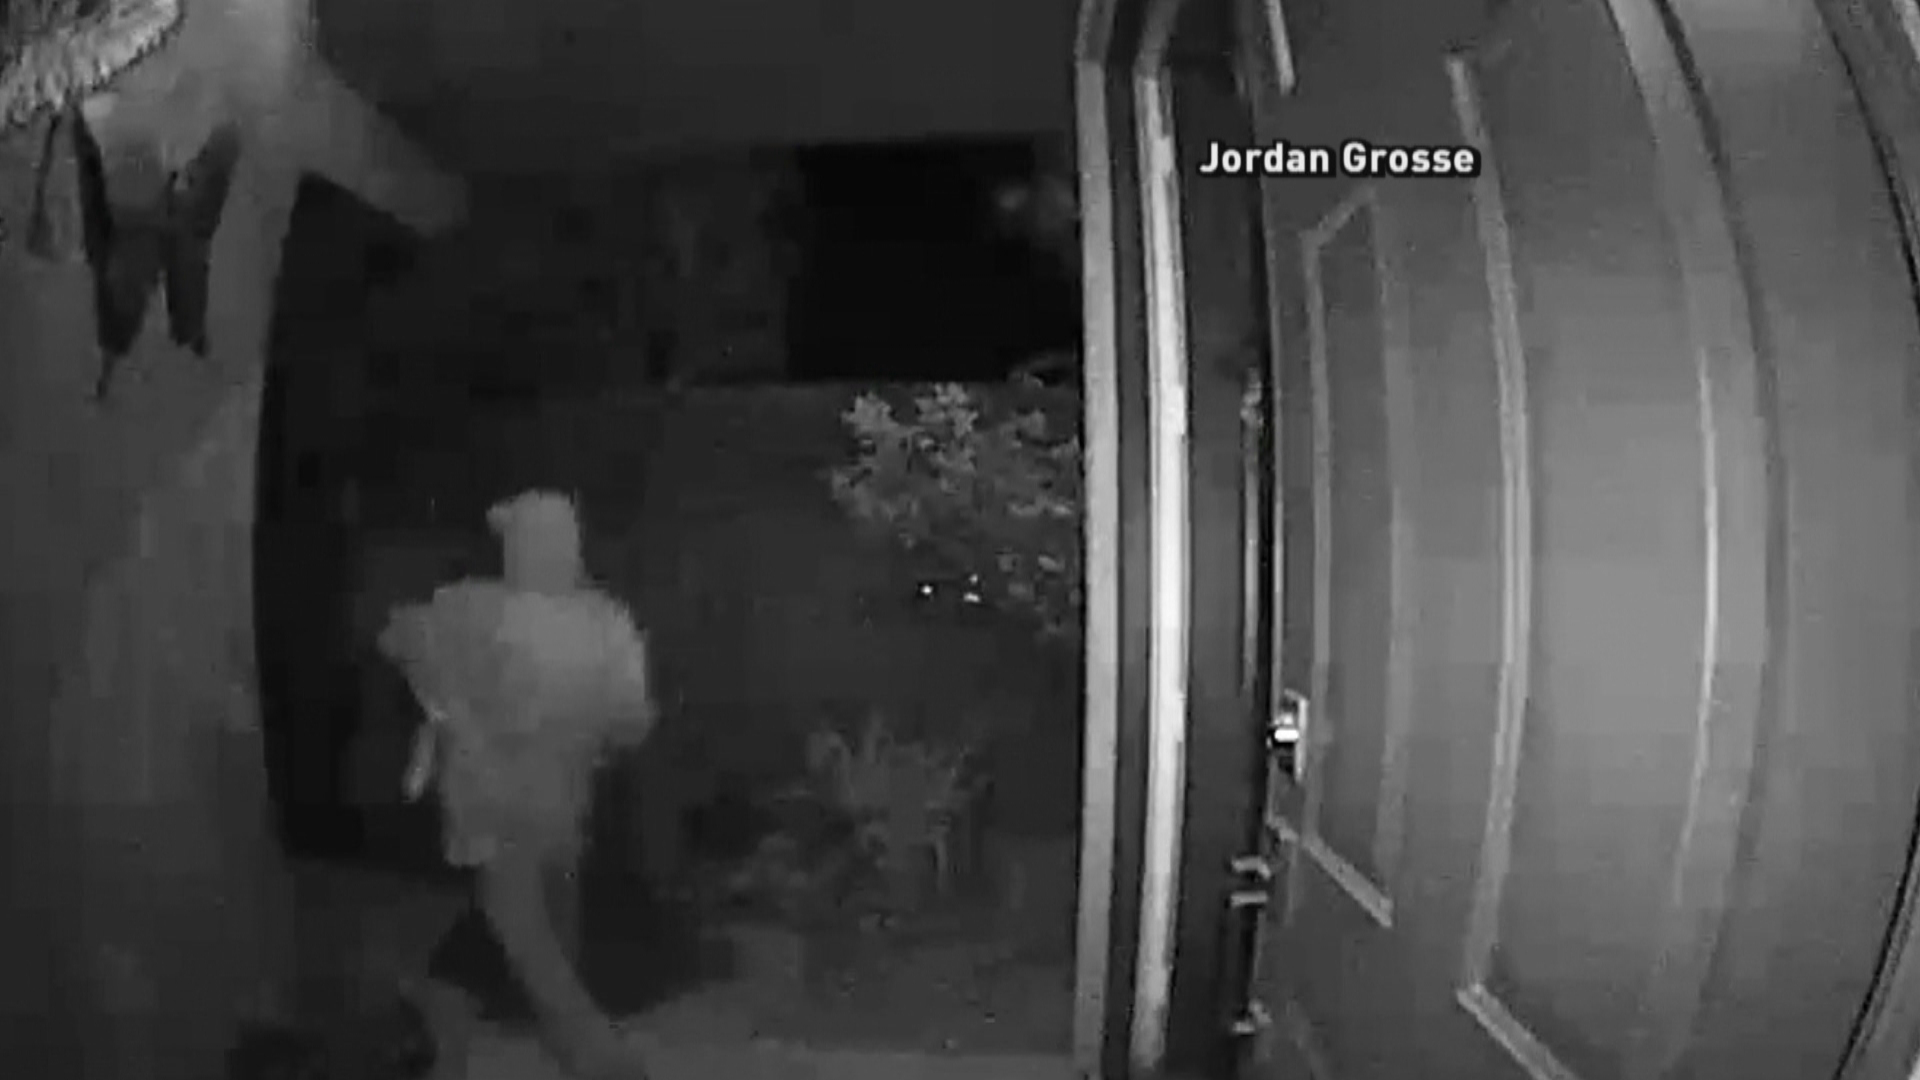 A home burglary was caught on camera in Summerlin, showing the thieves taking off with bags full of electronics, wine, and Christmas gifts. (Jordan Grosse)